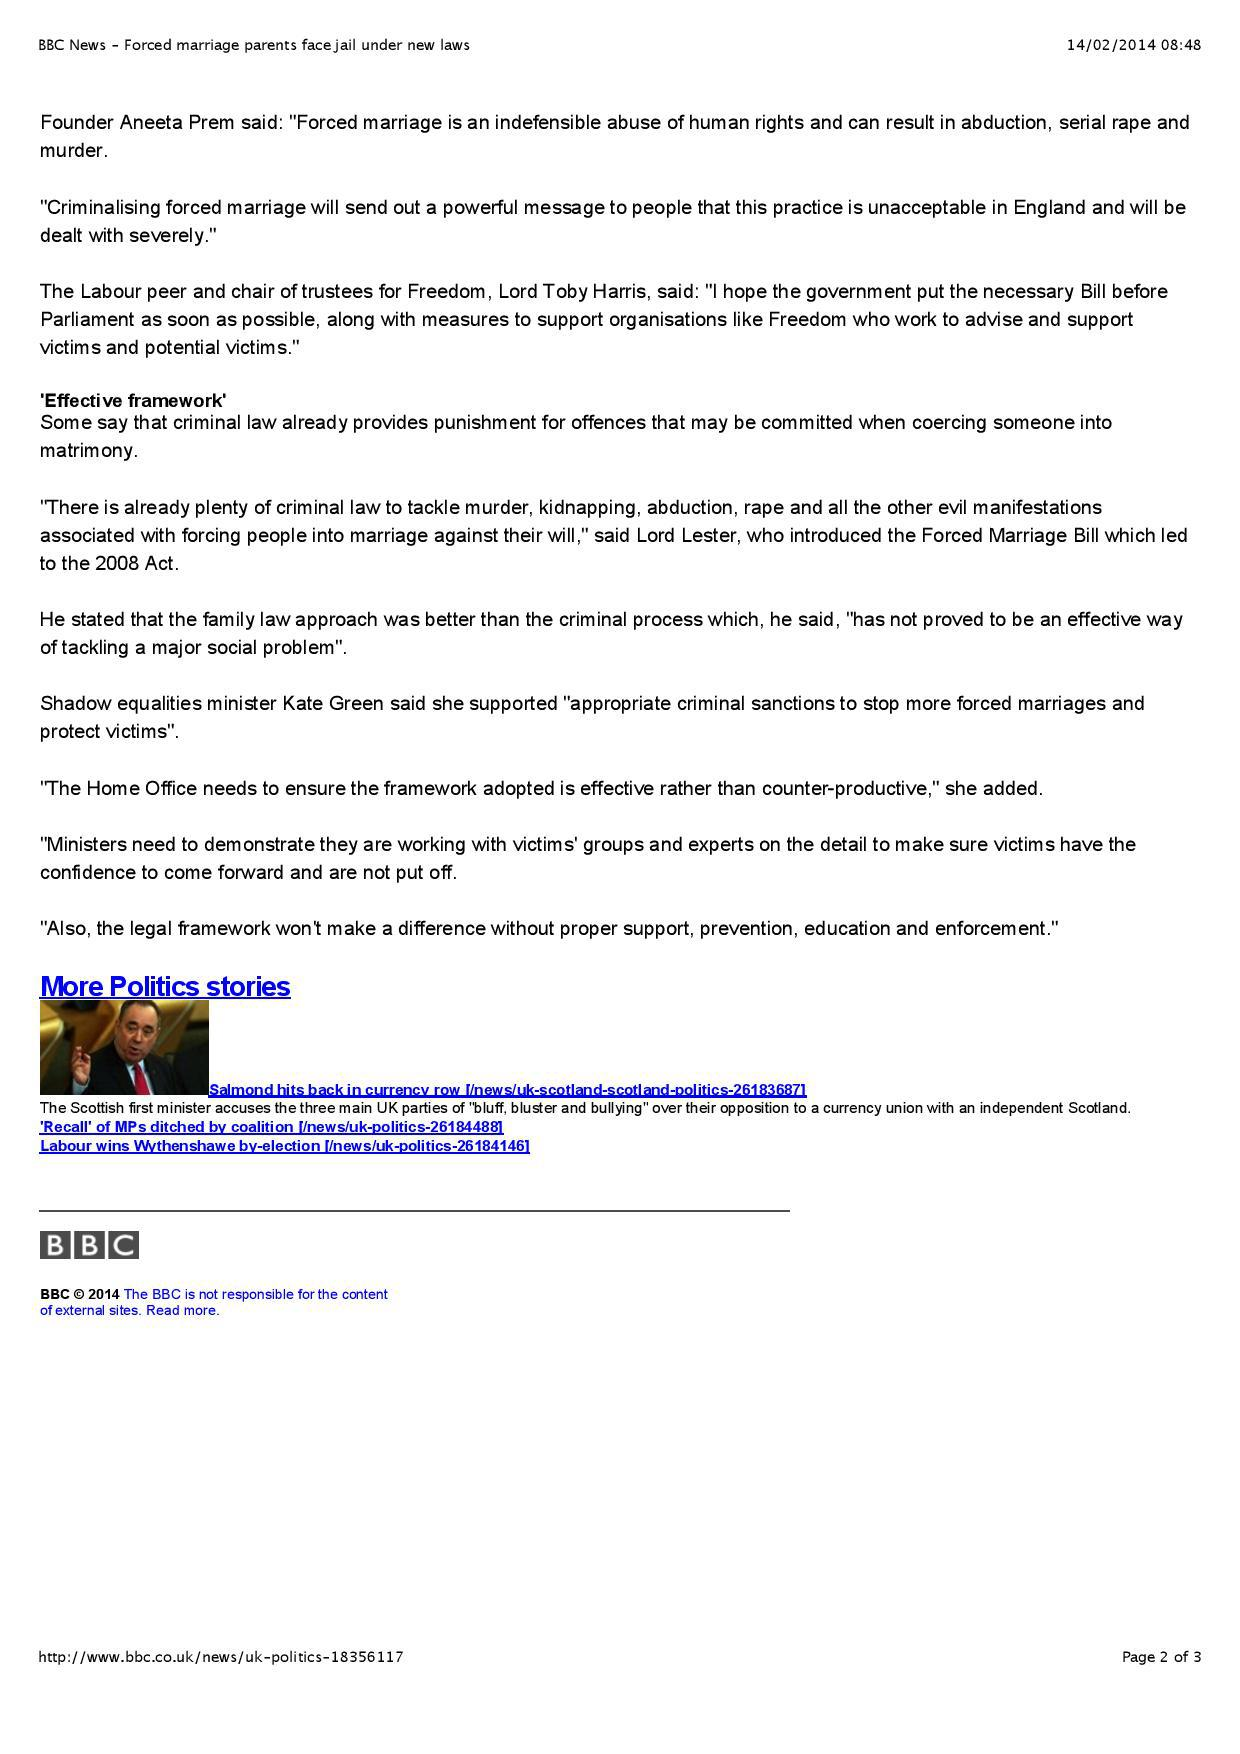 done-bbc-news-forced-marriage-parents-face-jail-under-new-laws-page-002